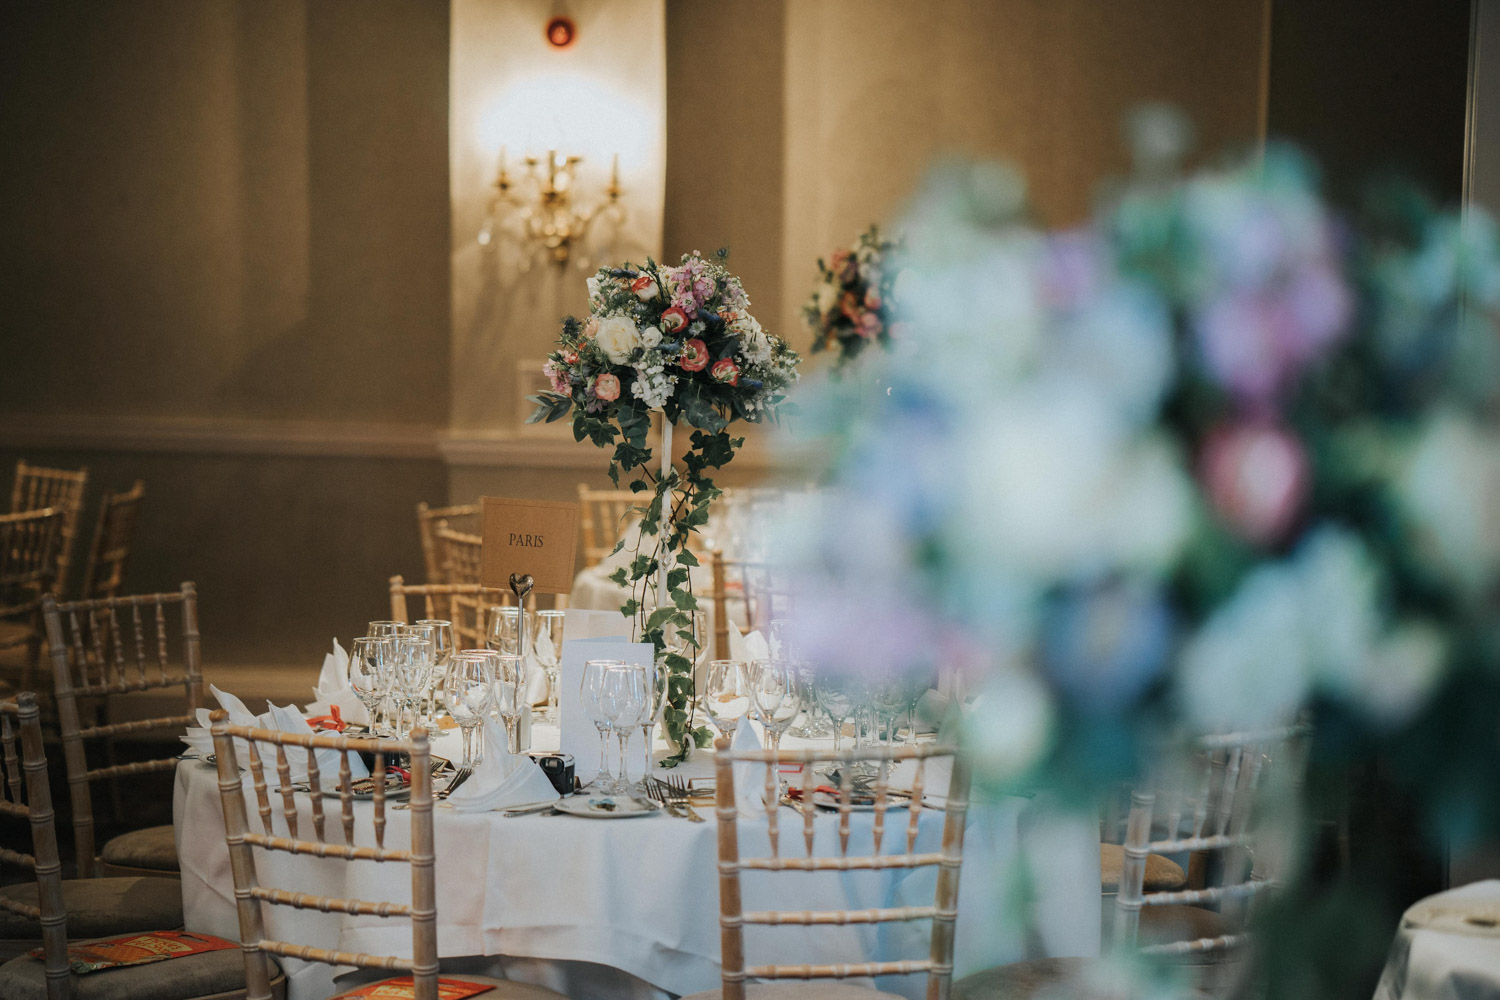 Chilston Park Hotel wedding floral pieces